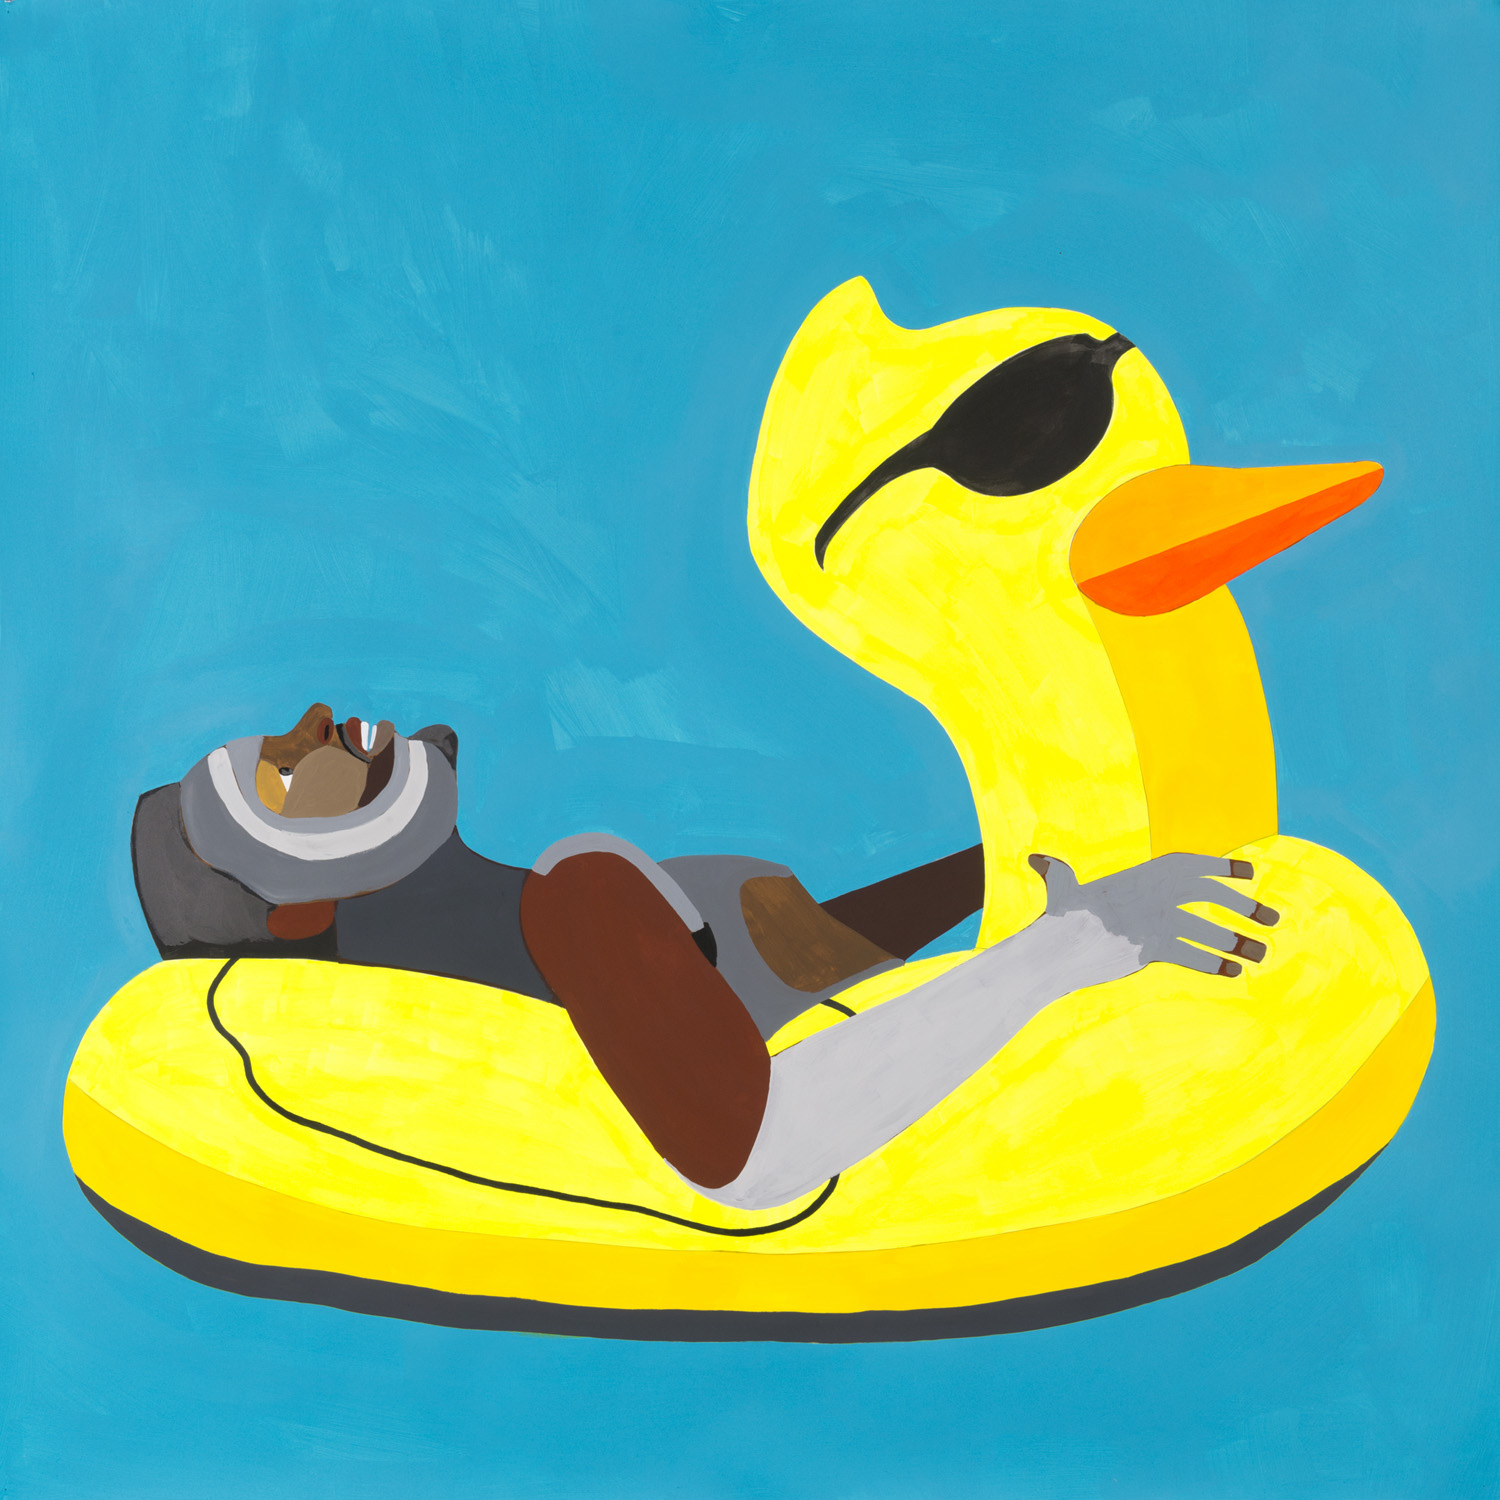 Adams, Floater 50 (ducky with glasses), 2017